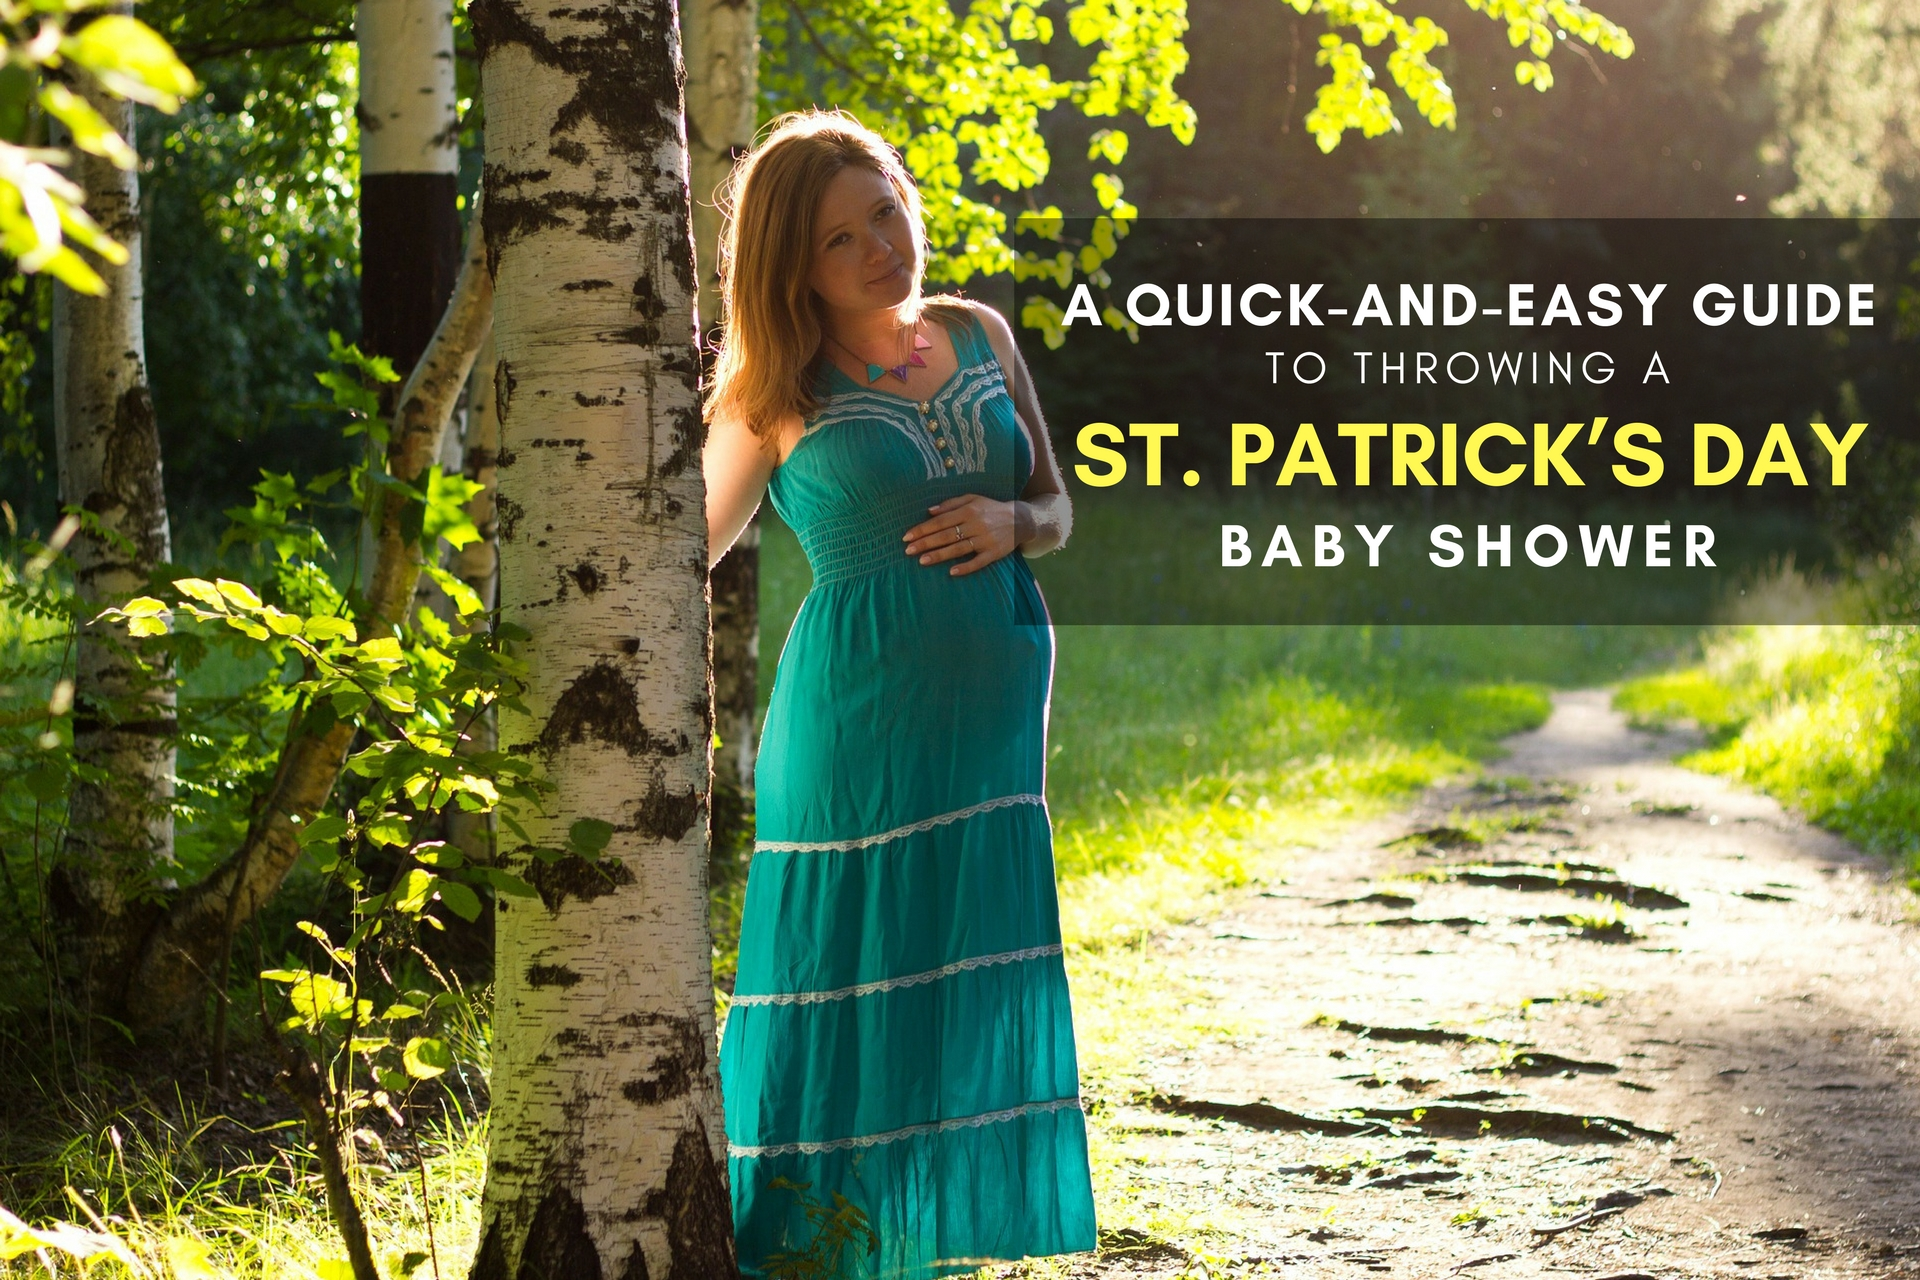 A QUICK-AND-EASY GUIDE TO THROWING A ST. PATRICK'S DAY BABY SHOWER (1)